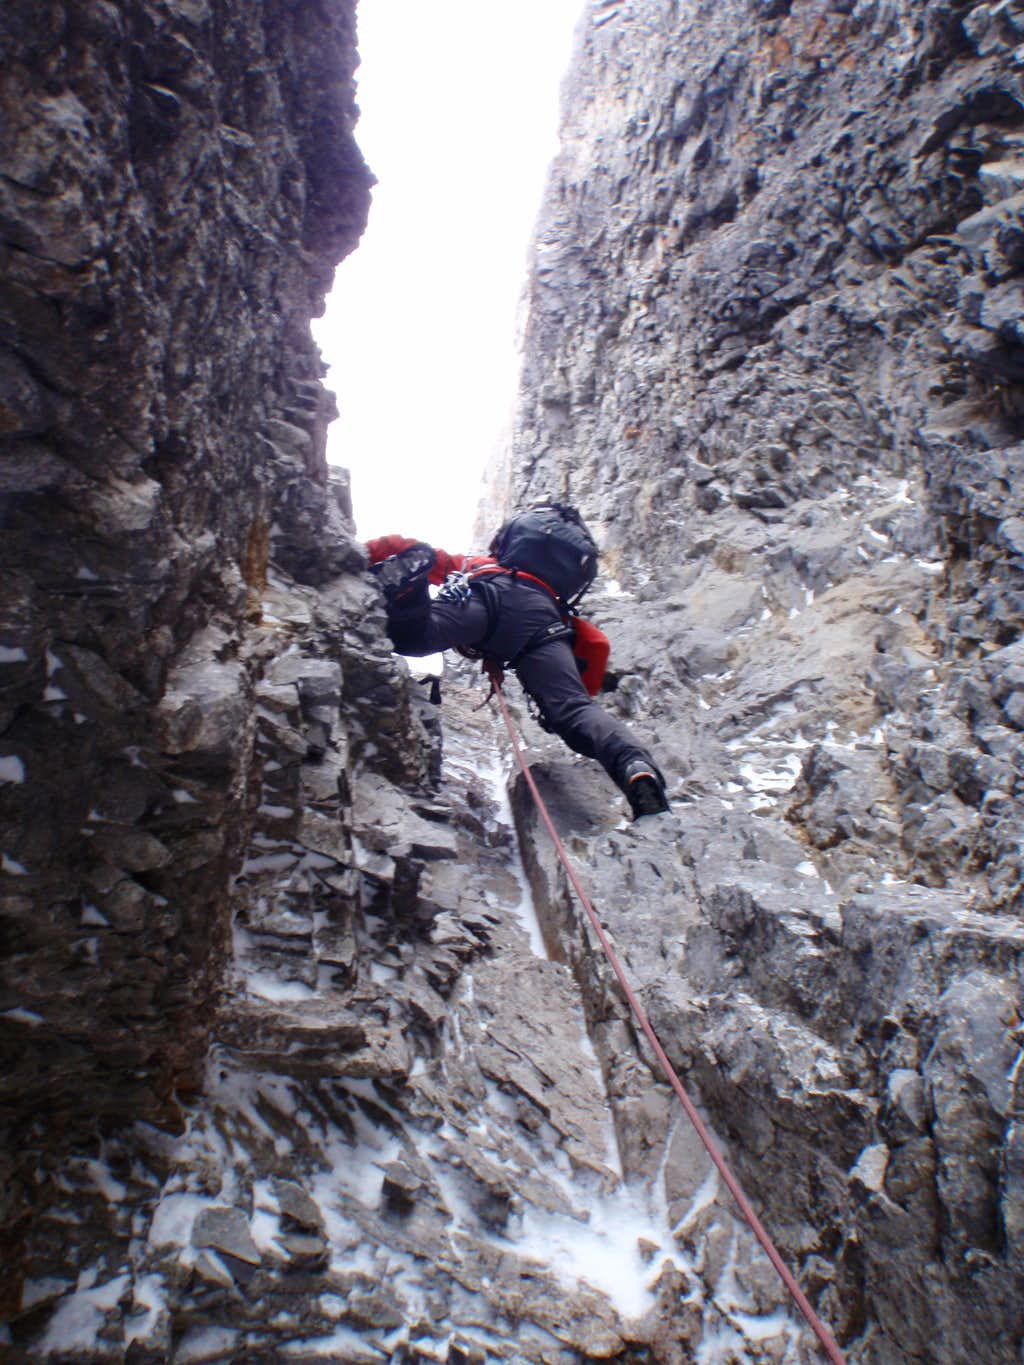 The real climbing starts